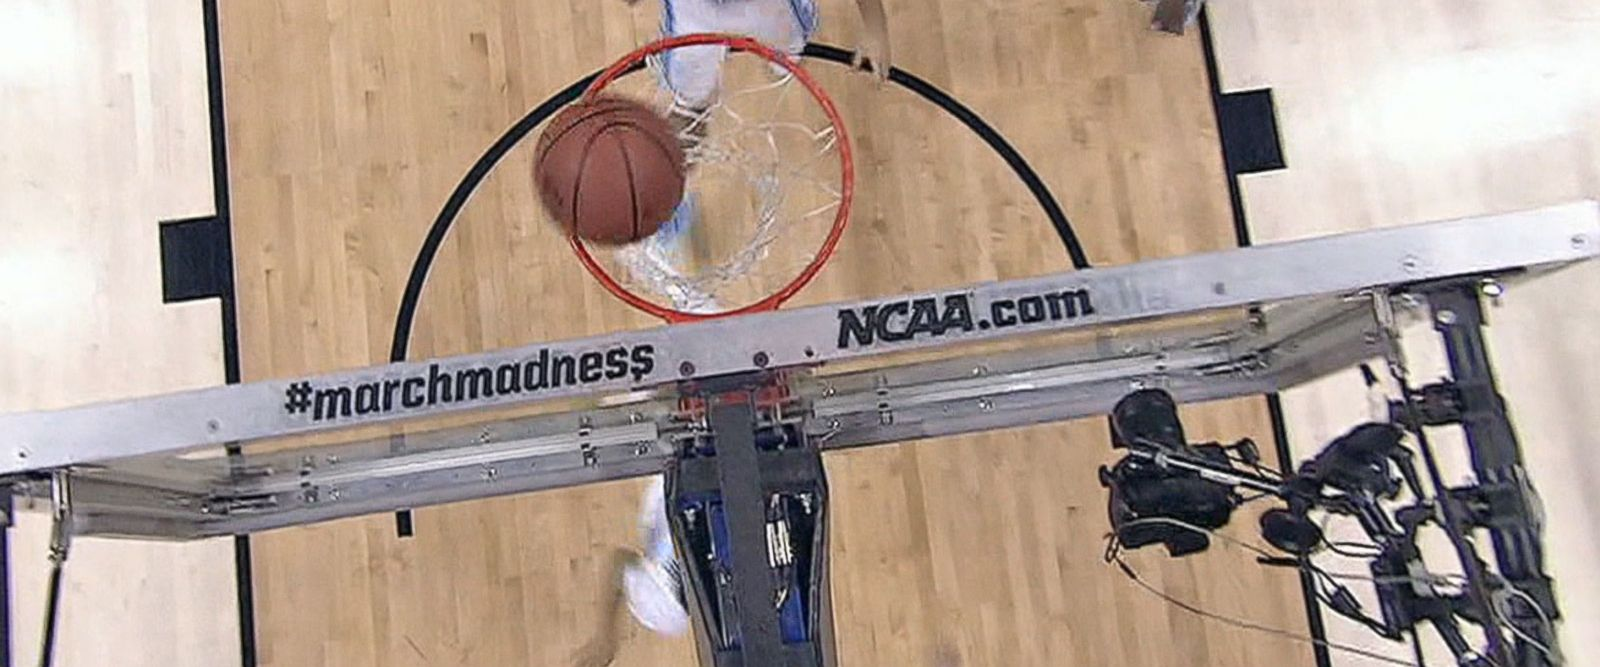 VIDEO: March Madness 2017's first round saw some exciting game play